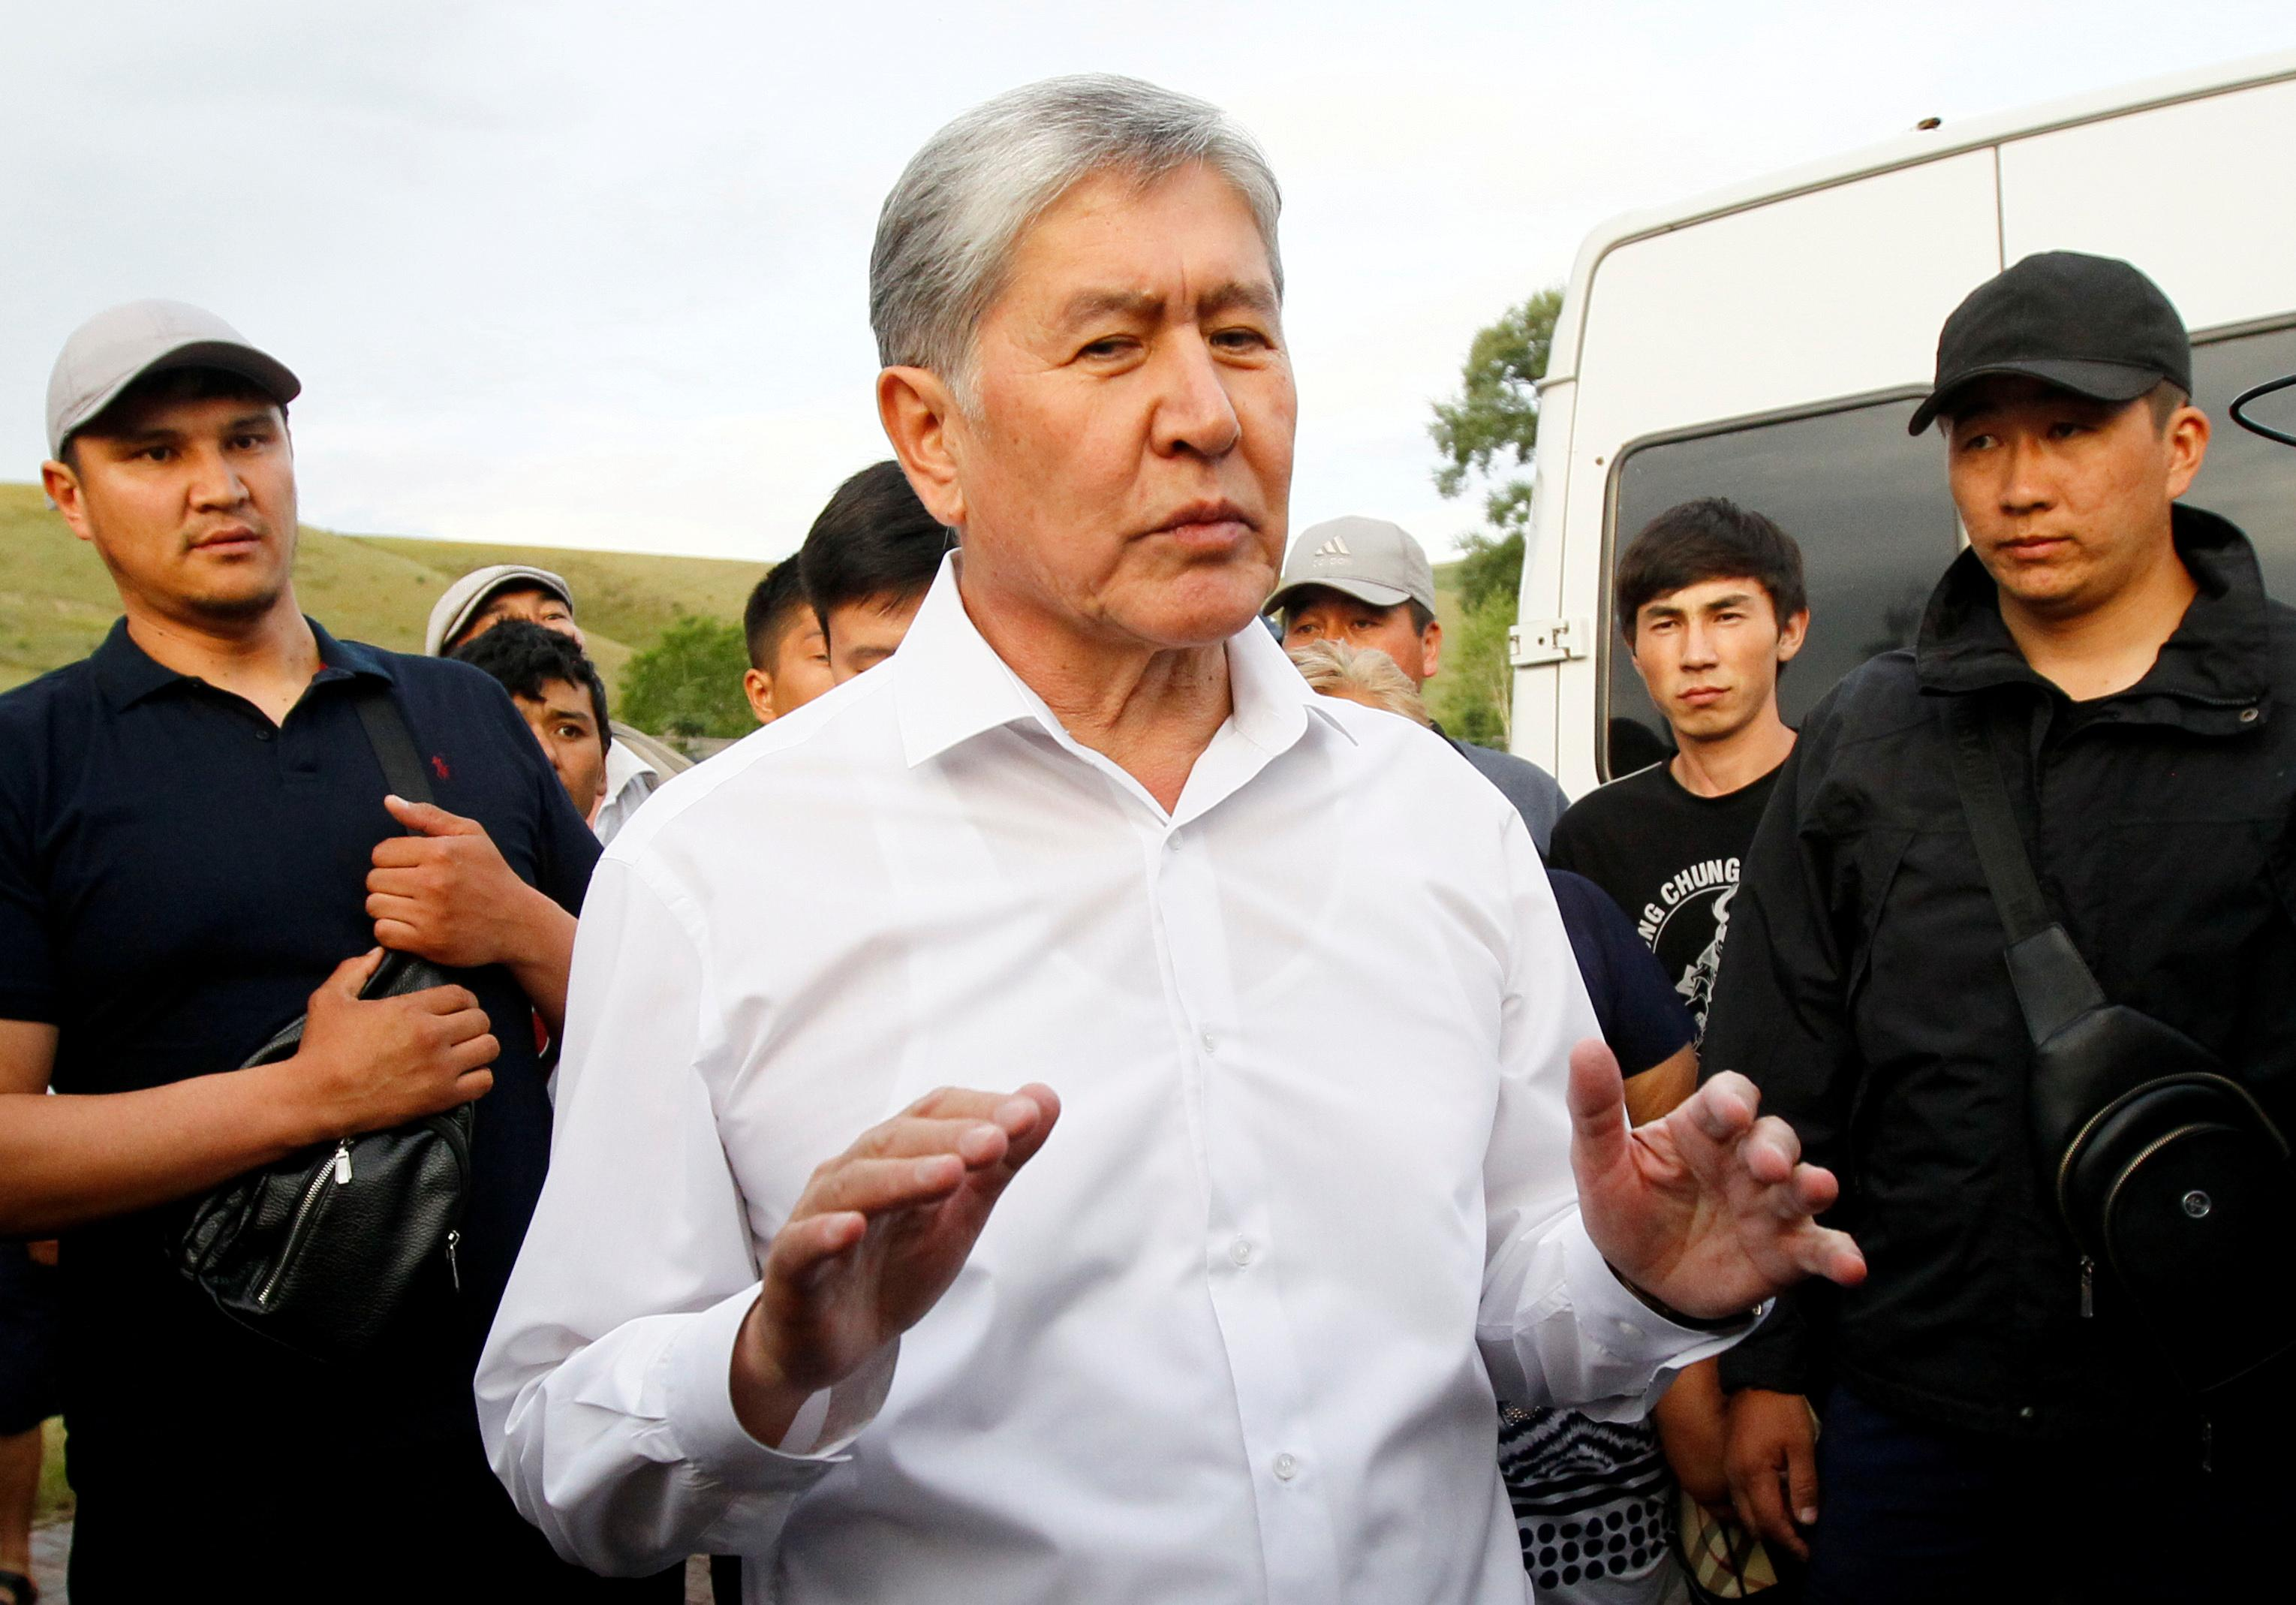 Kyrgyz ex-president Atambayev charged with corruption